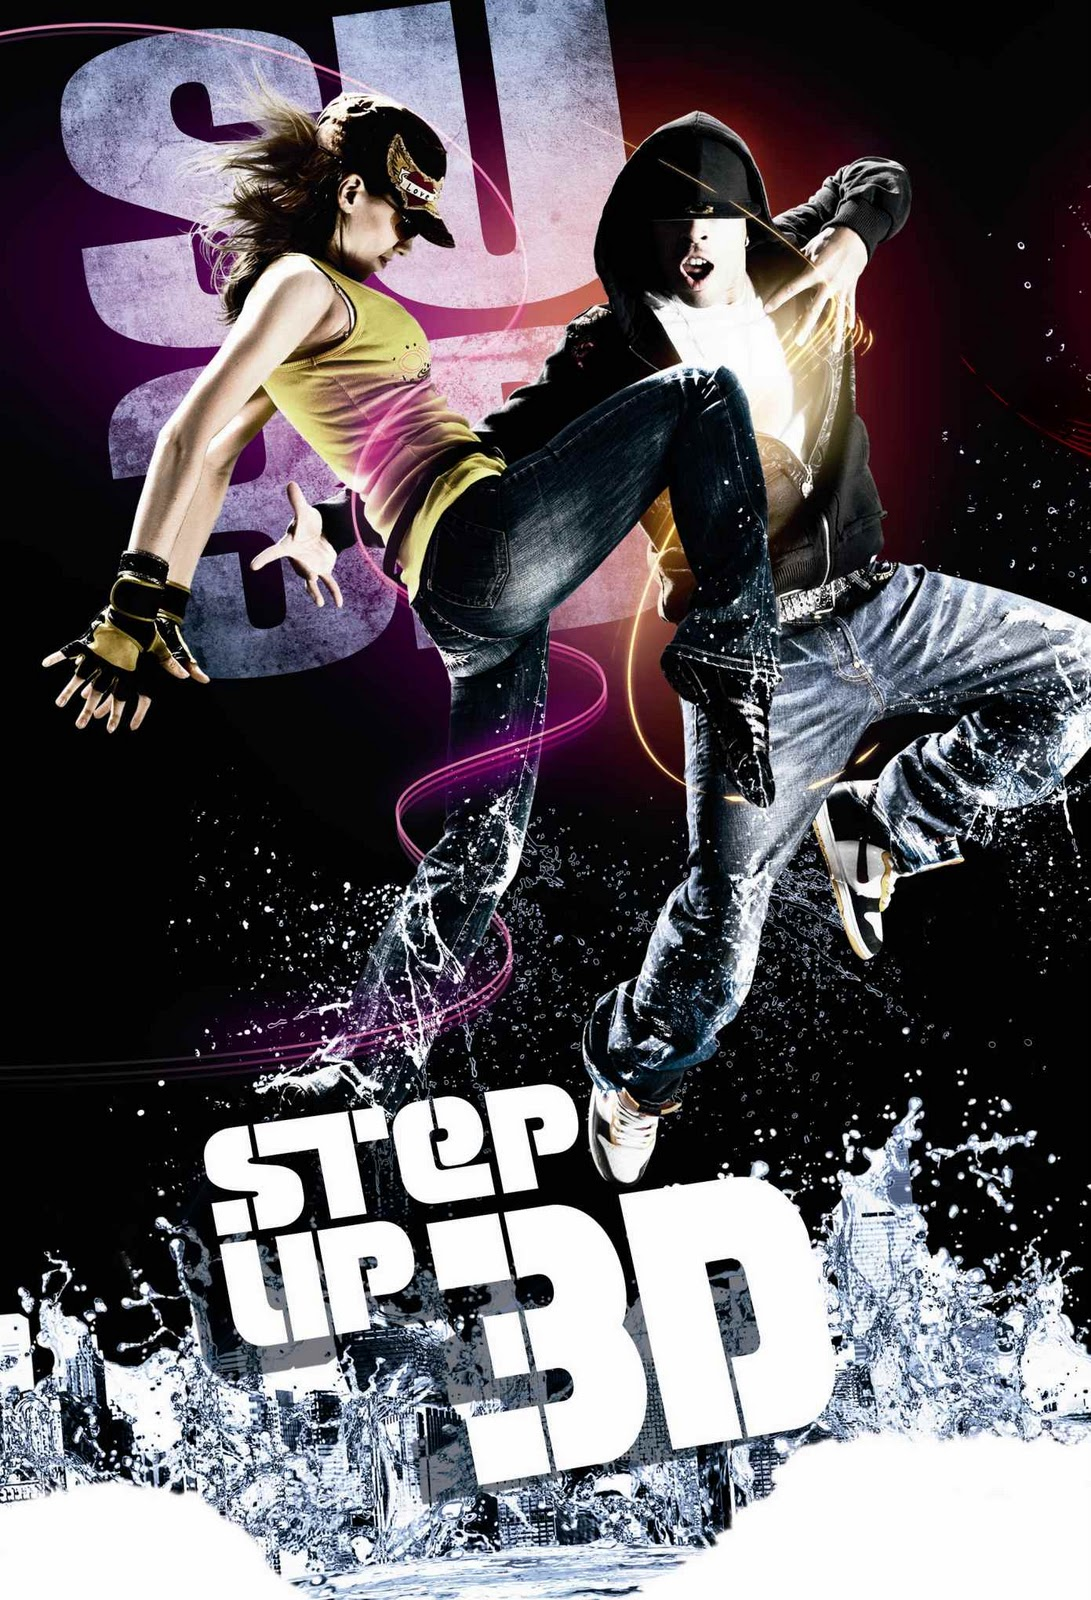 Step Up Steps: Free Hollywood Movie Pictures,Photos,Images,Wallpapers